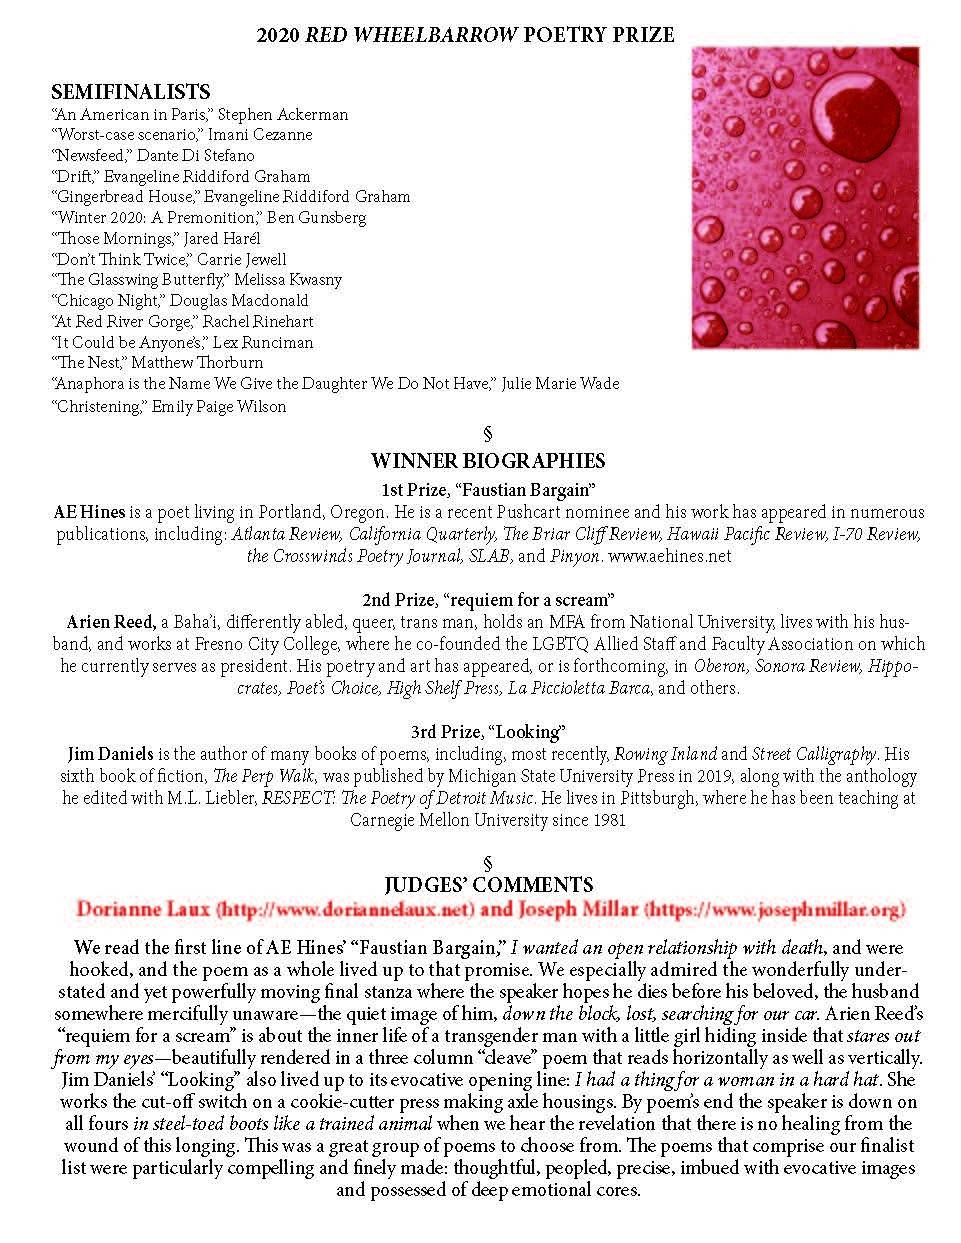 page two of 2020 press release, red wheelbarrow